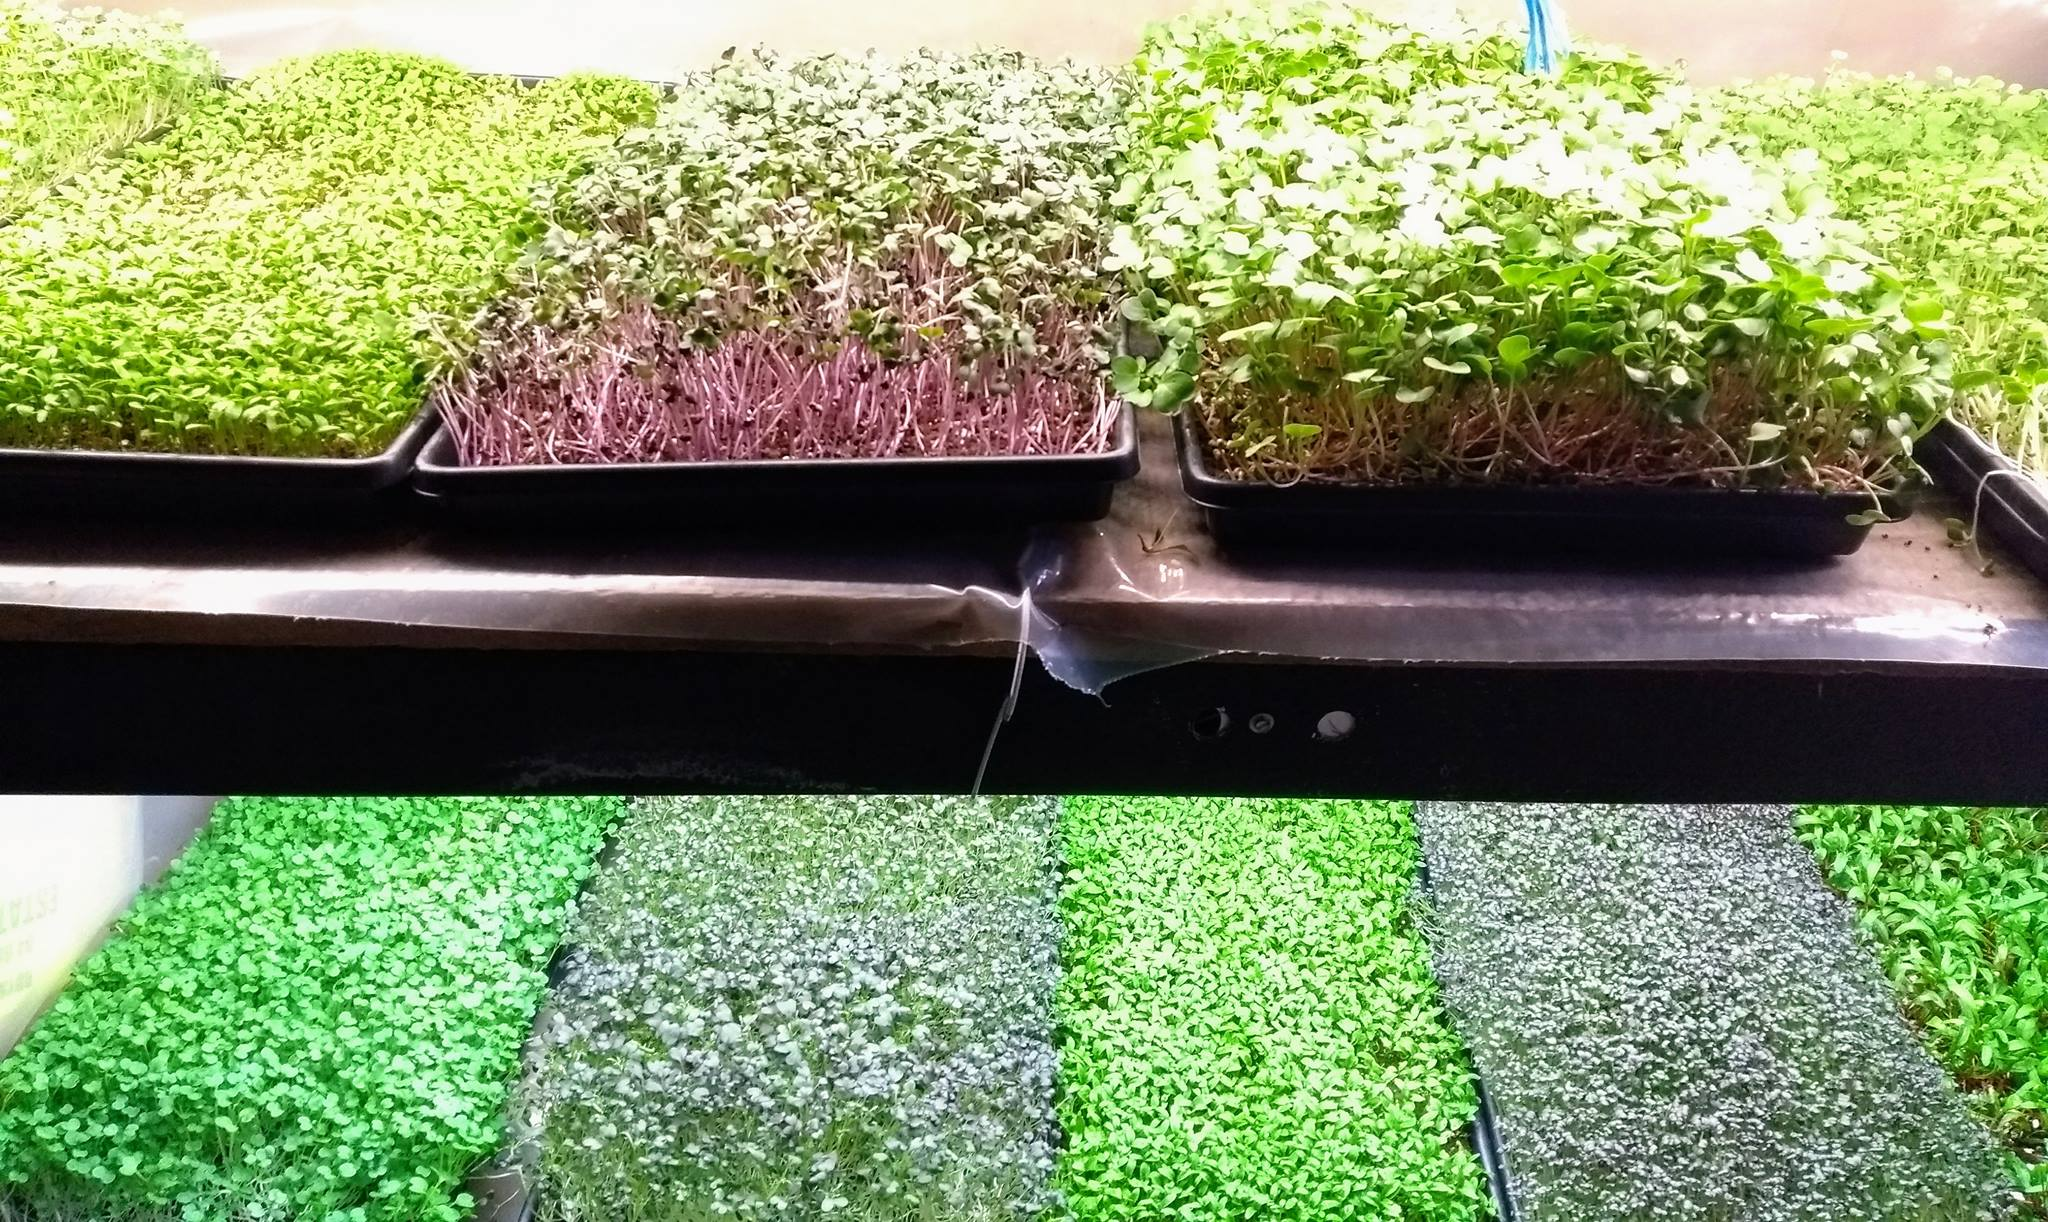 Hacking hydroponics to grow kidney-friendly vegetables